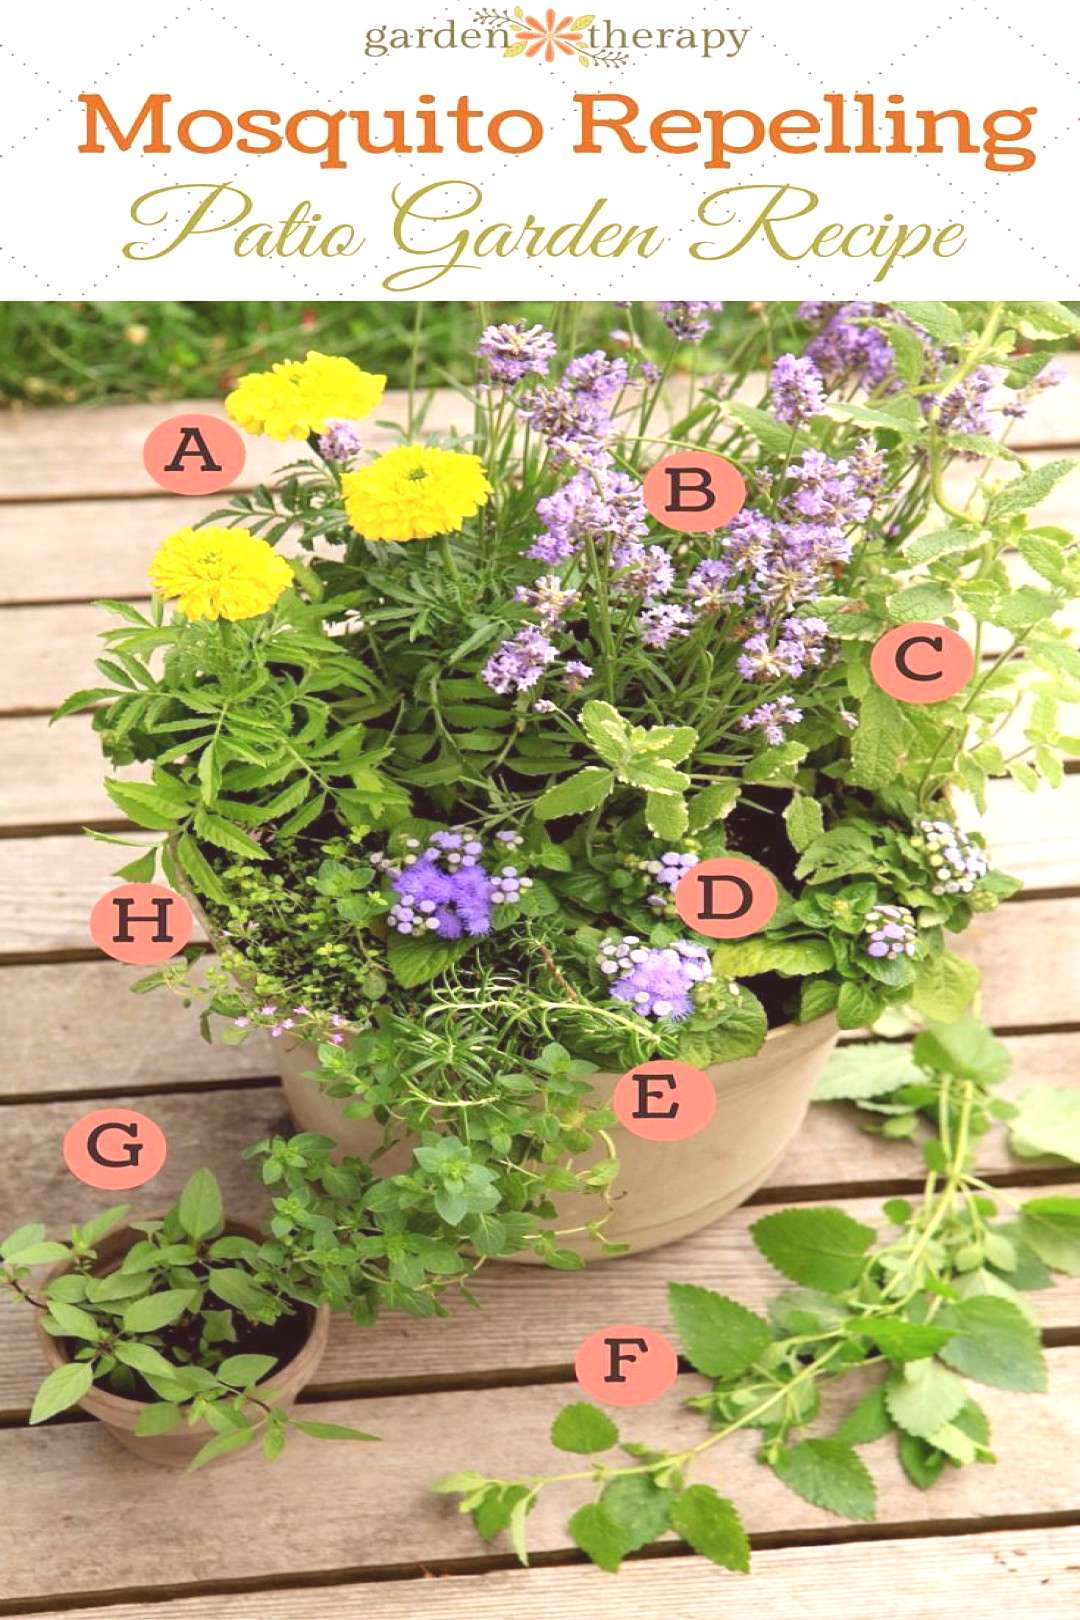 Get started with gardening ideas